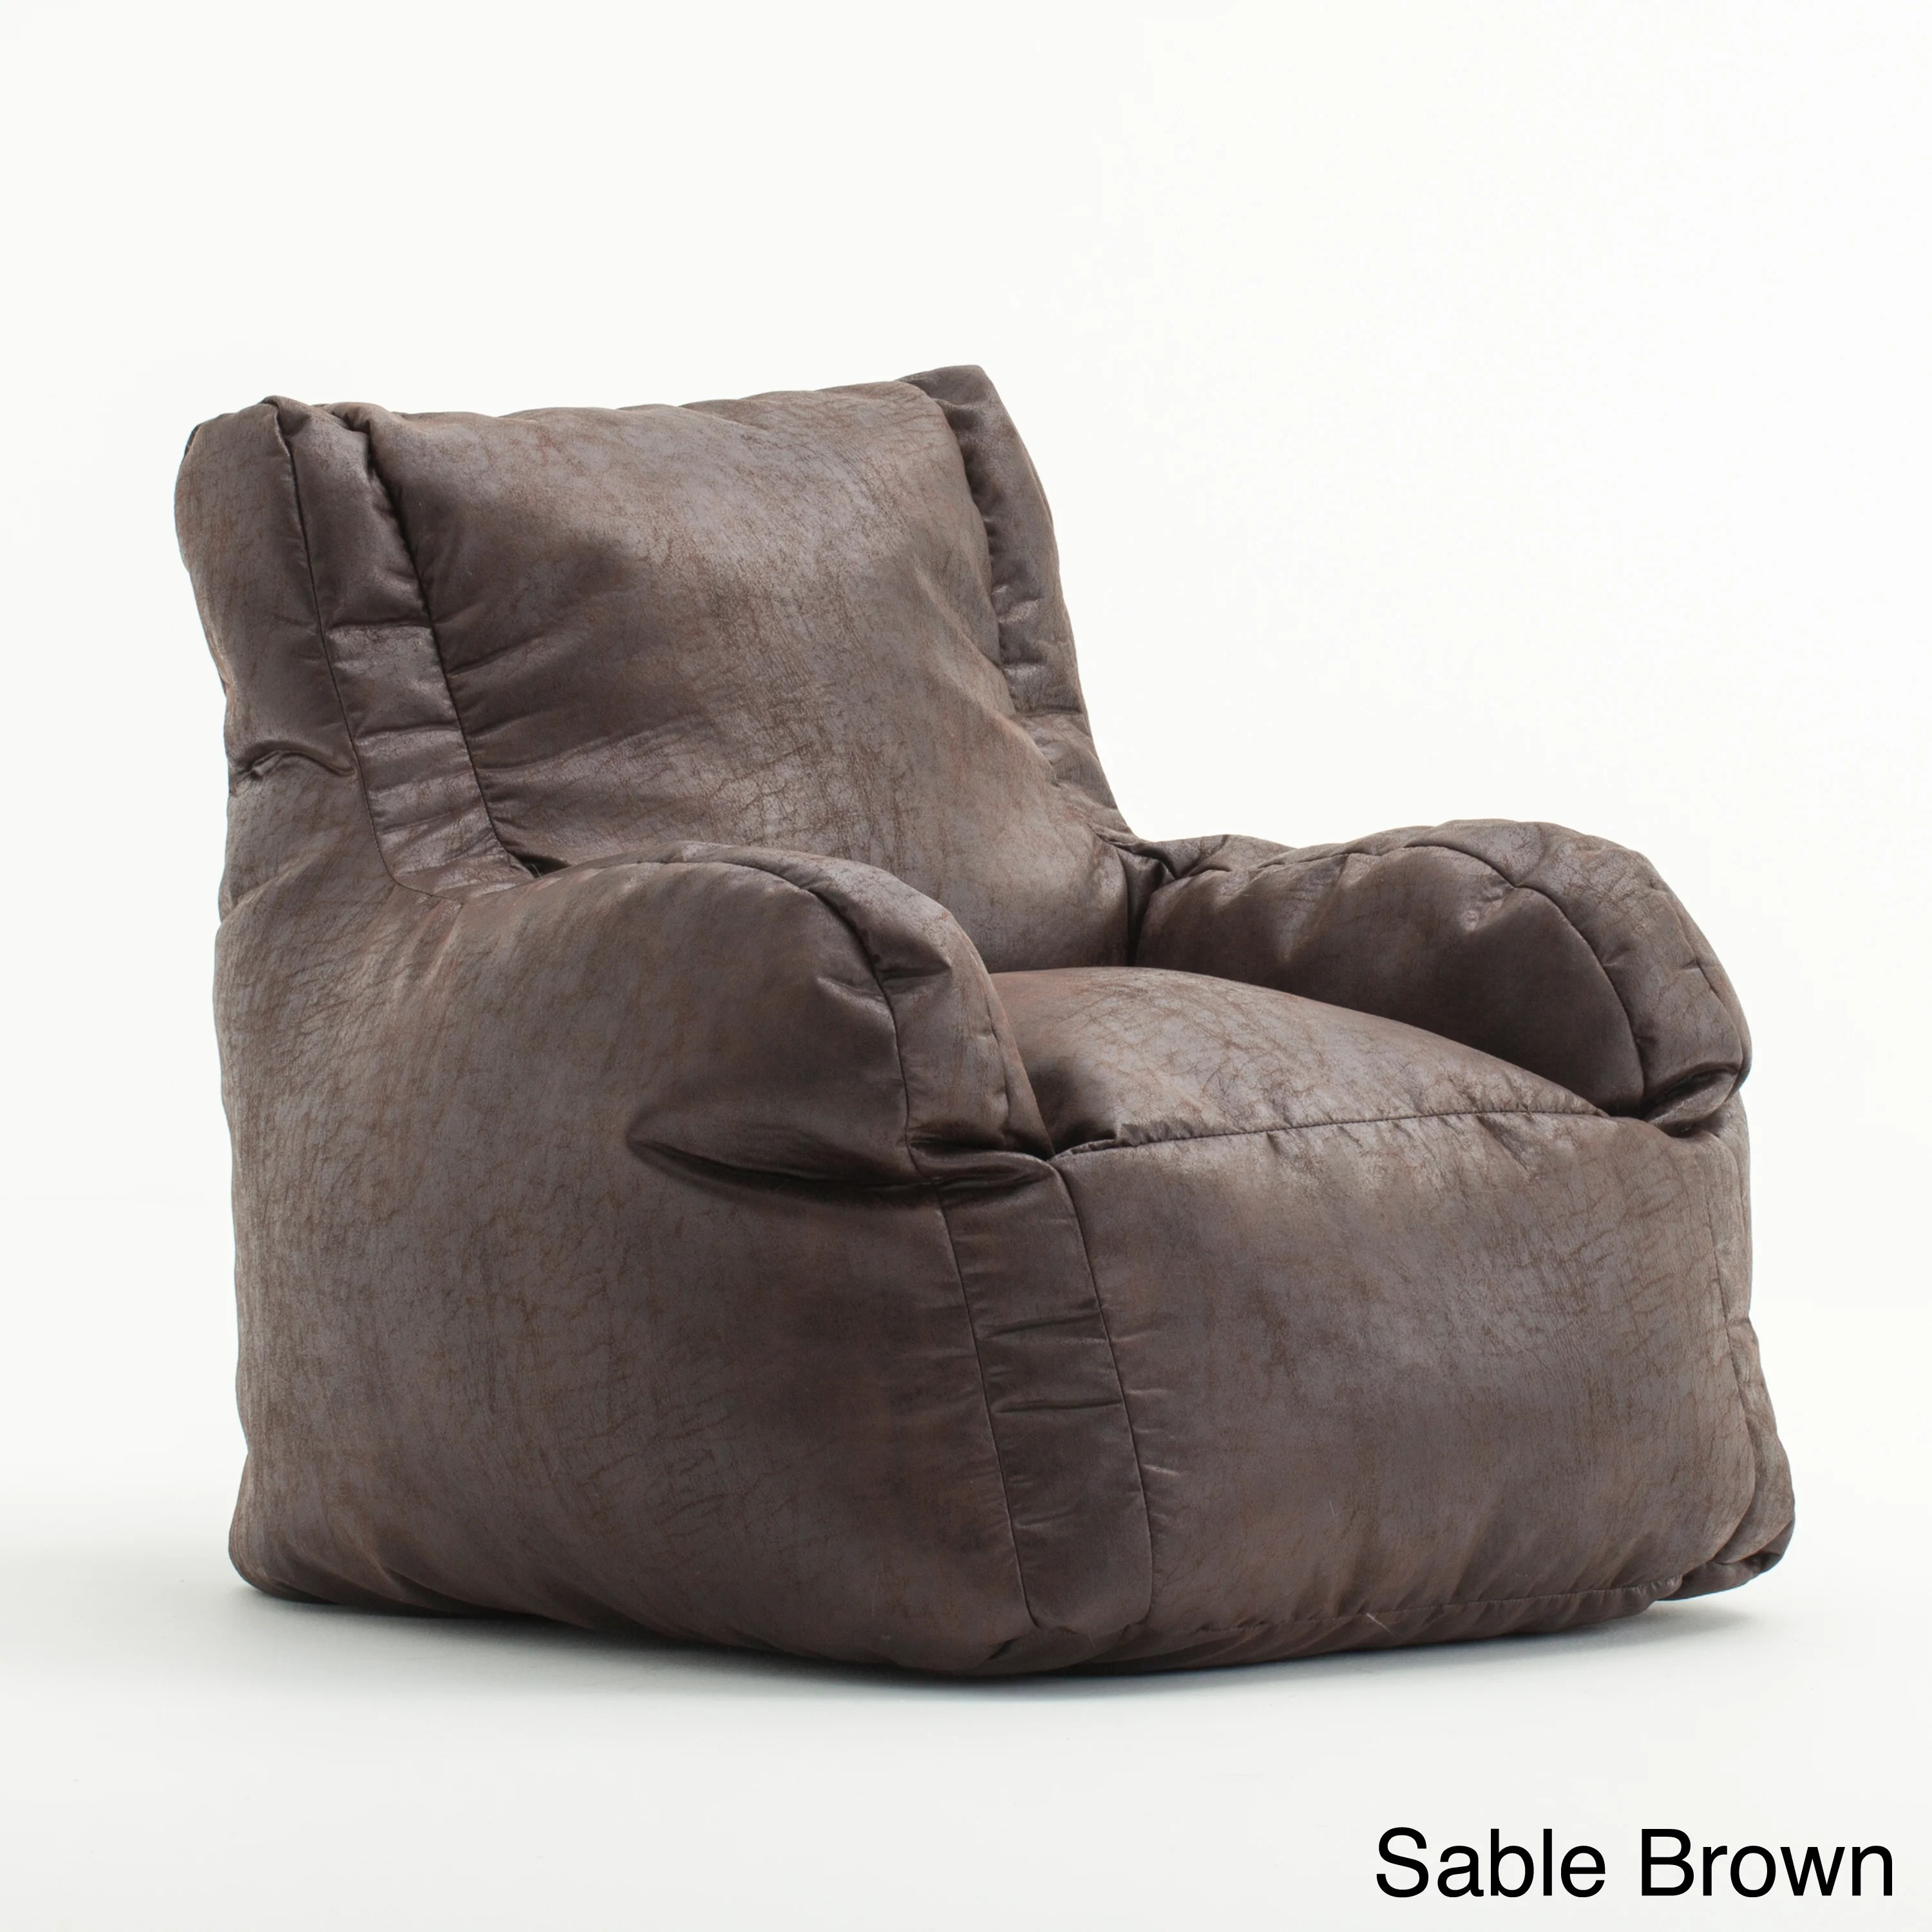 restoration hardware beanbag chair accent for sale brown faux leather sofa bean bag baci living room